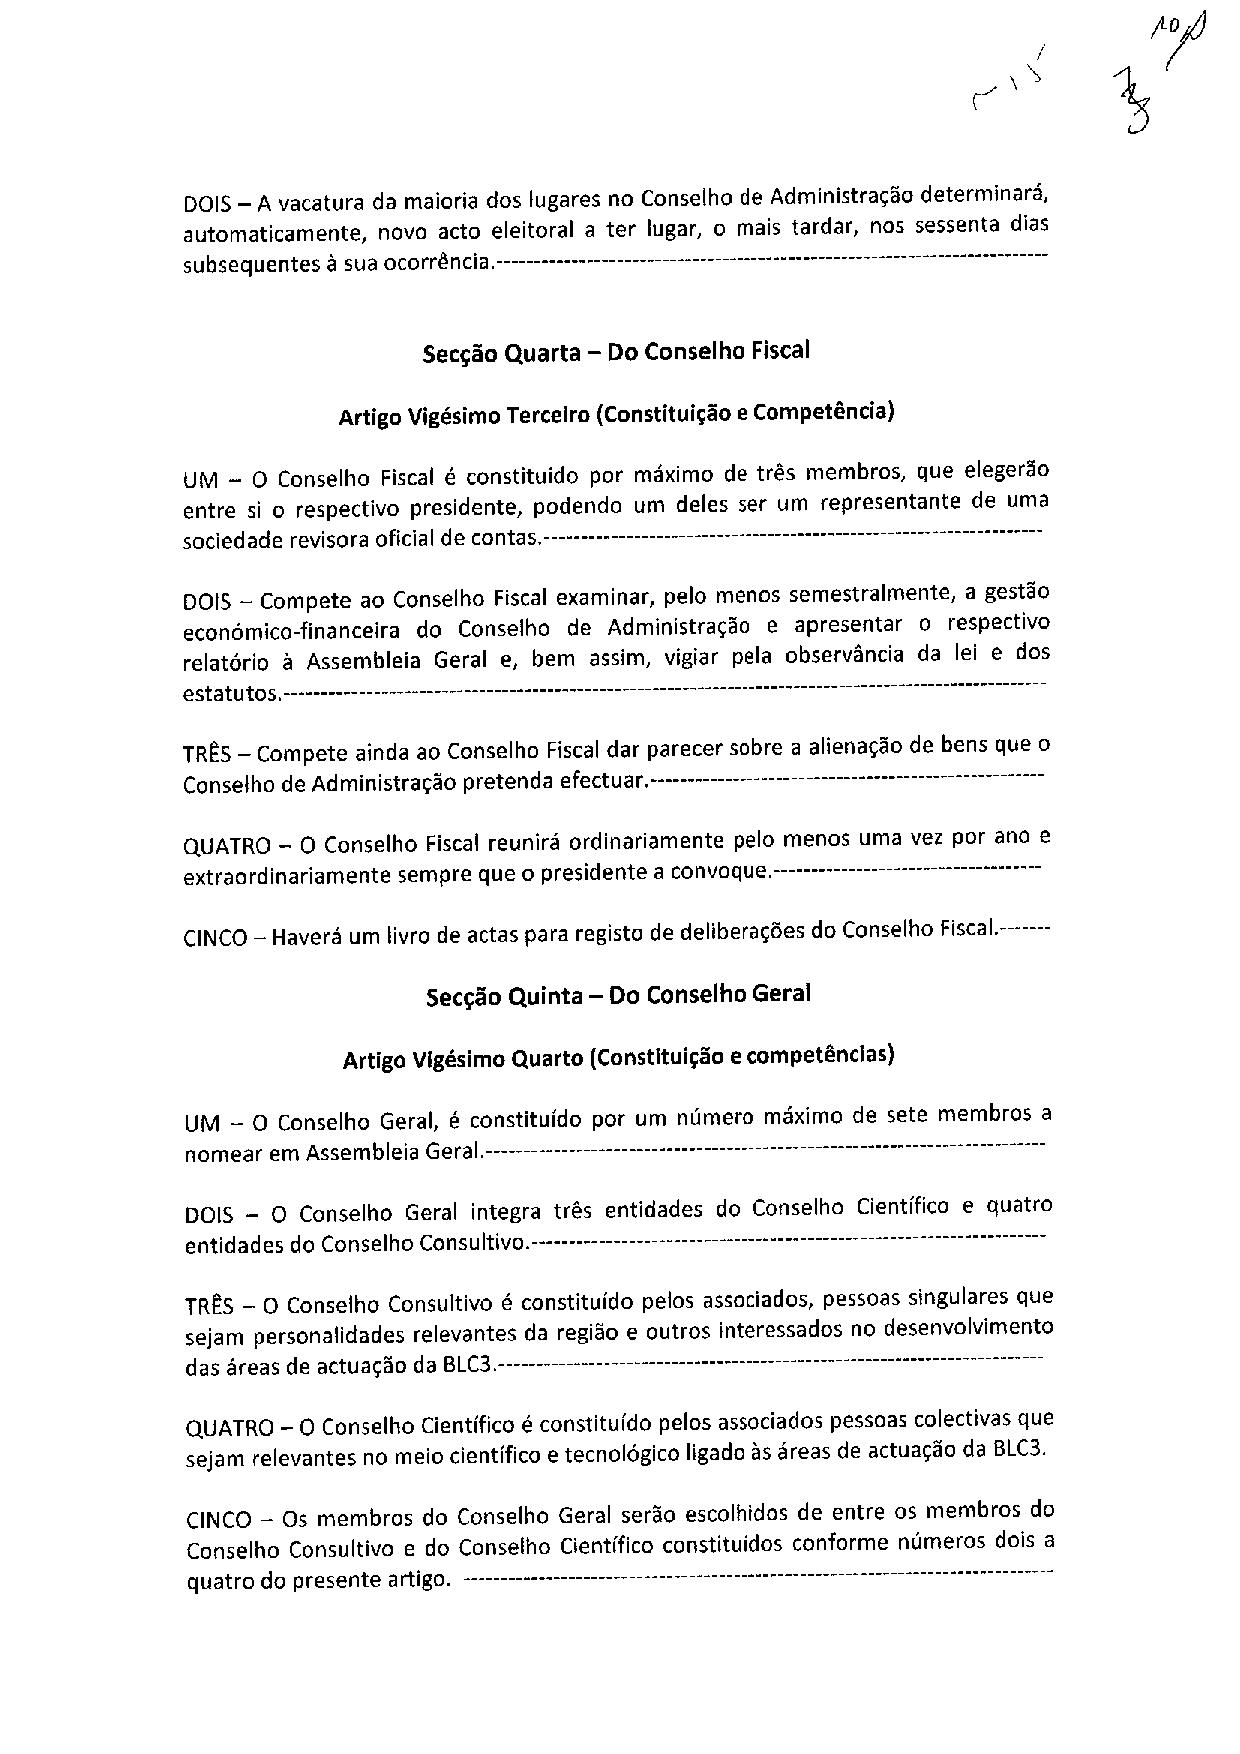 509402267_Associacao_BLC_3a_alteracao (1)-page-016